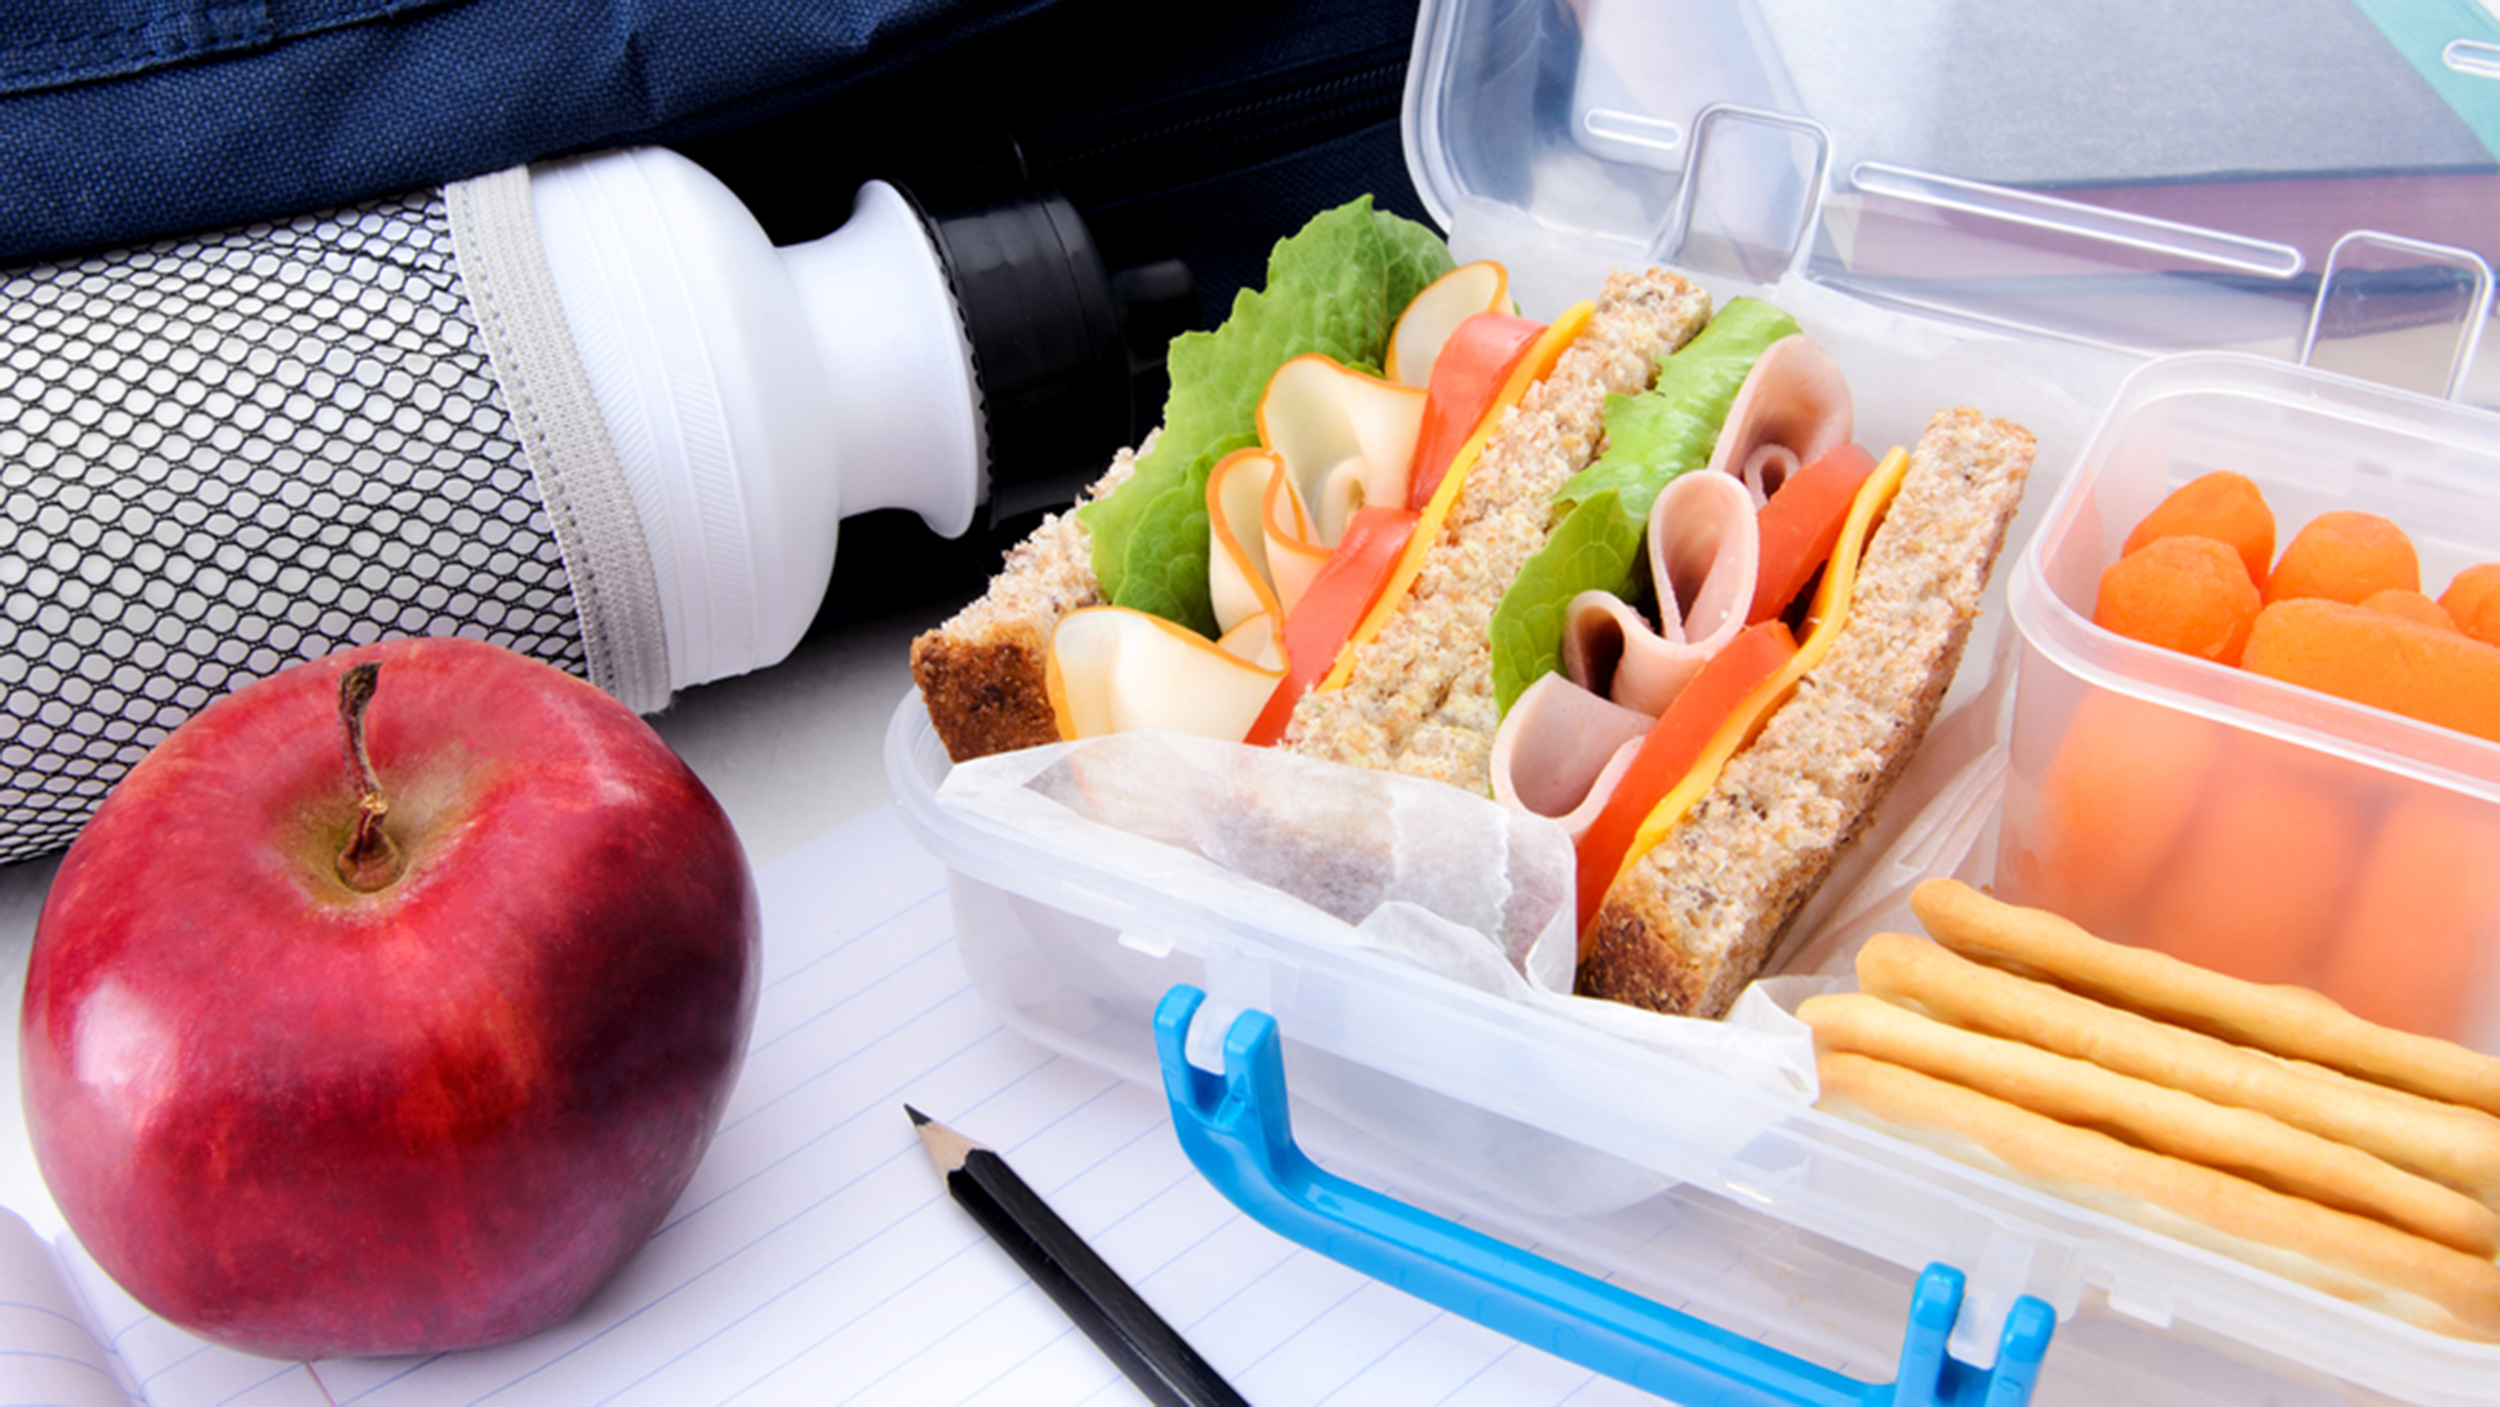 Lunch box ideas for happy healthy kids dc on heels a lunchbox with a sandwich fresh carrots crackers an apple and a bottle forumfinder Image collections